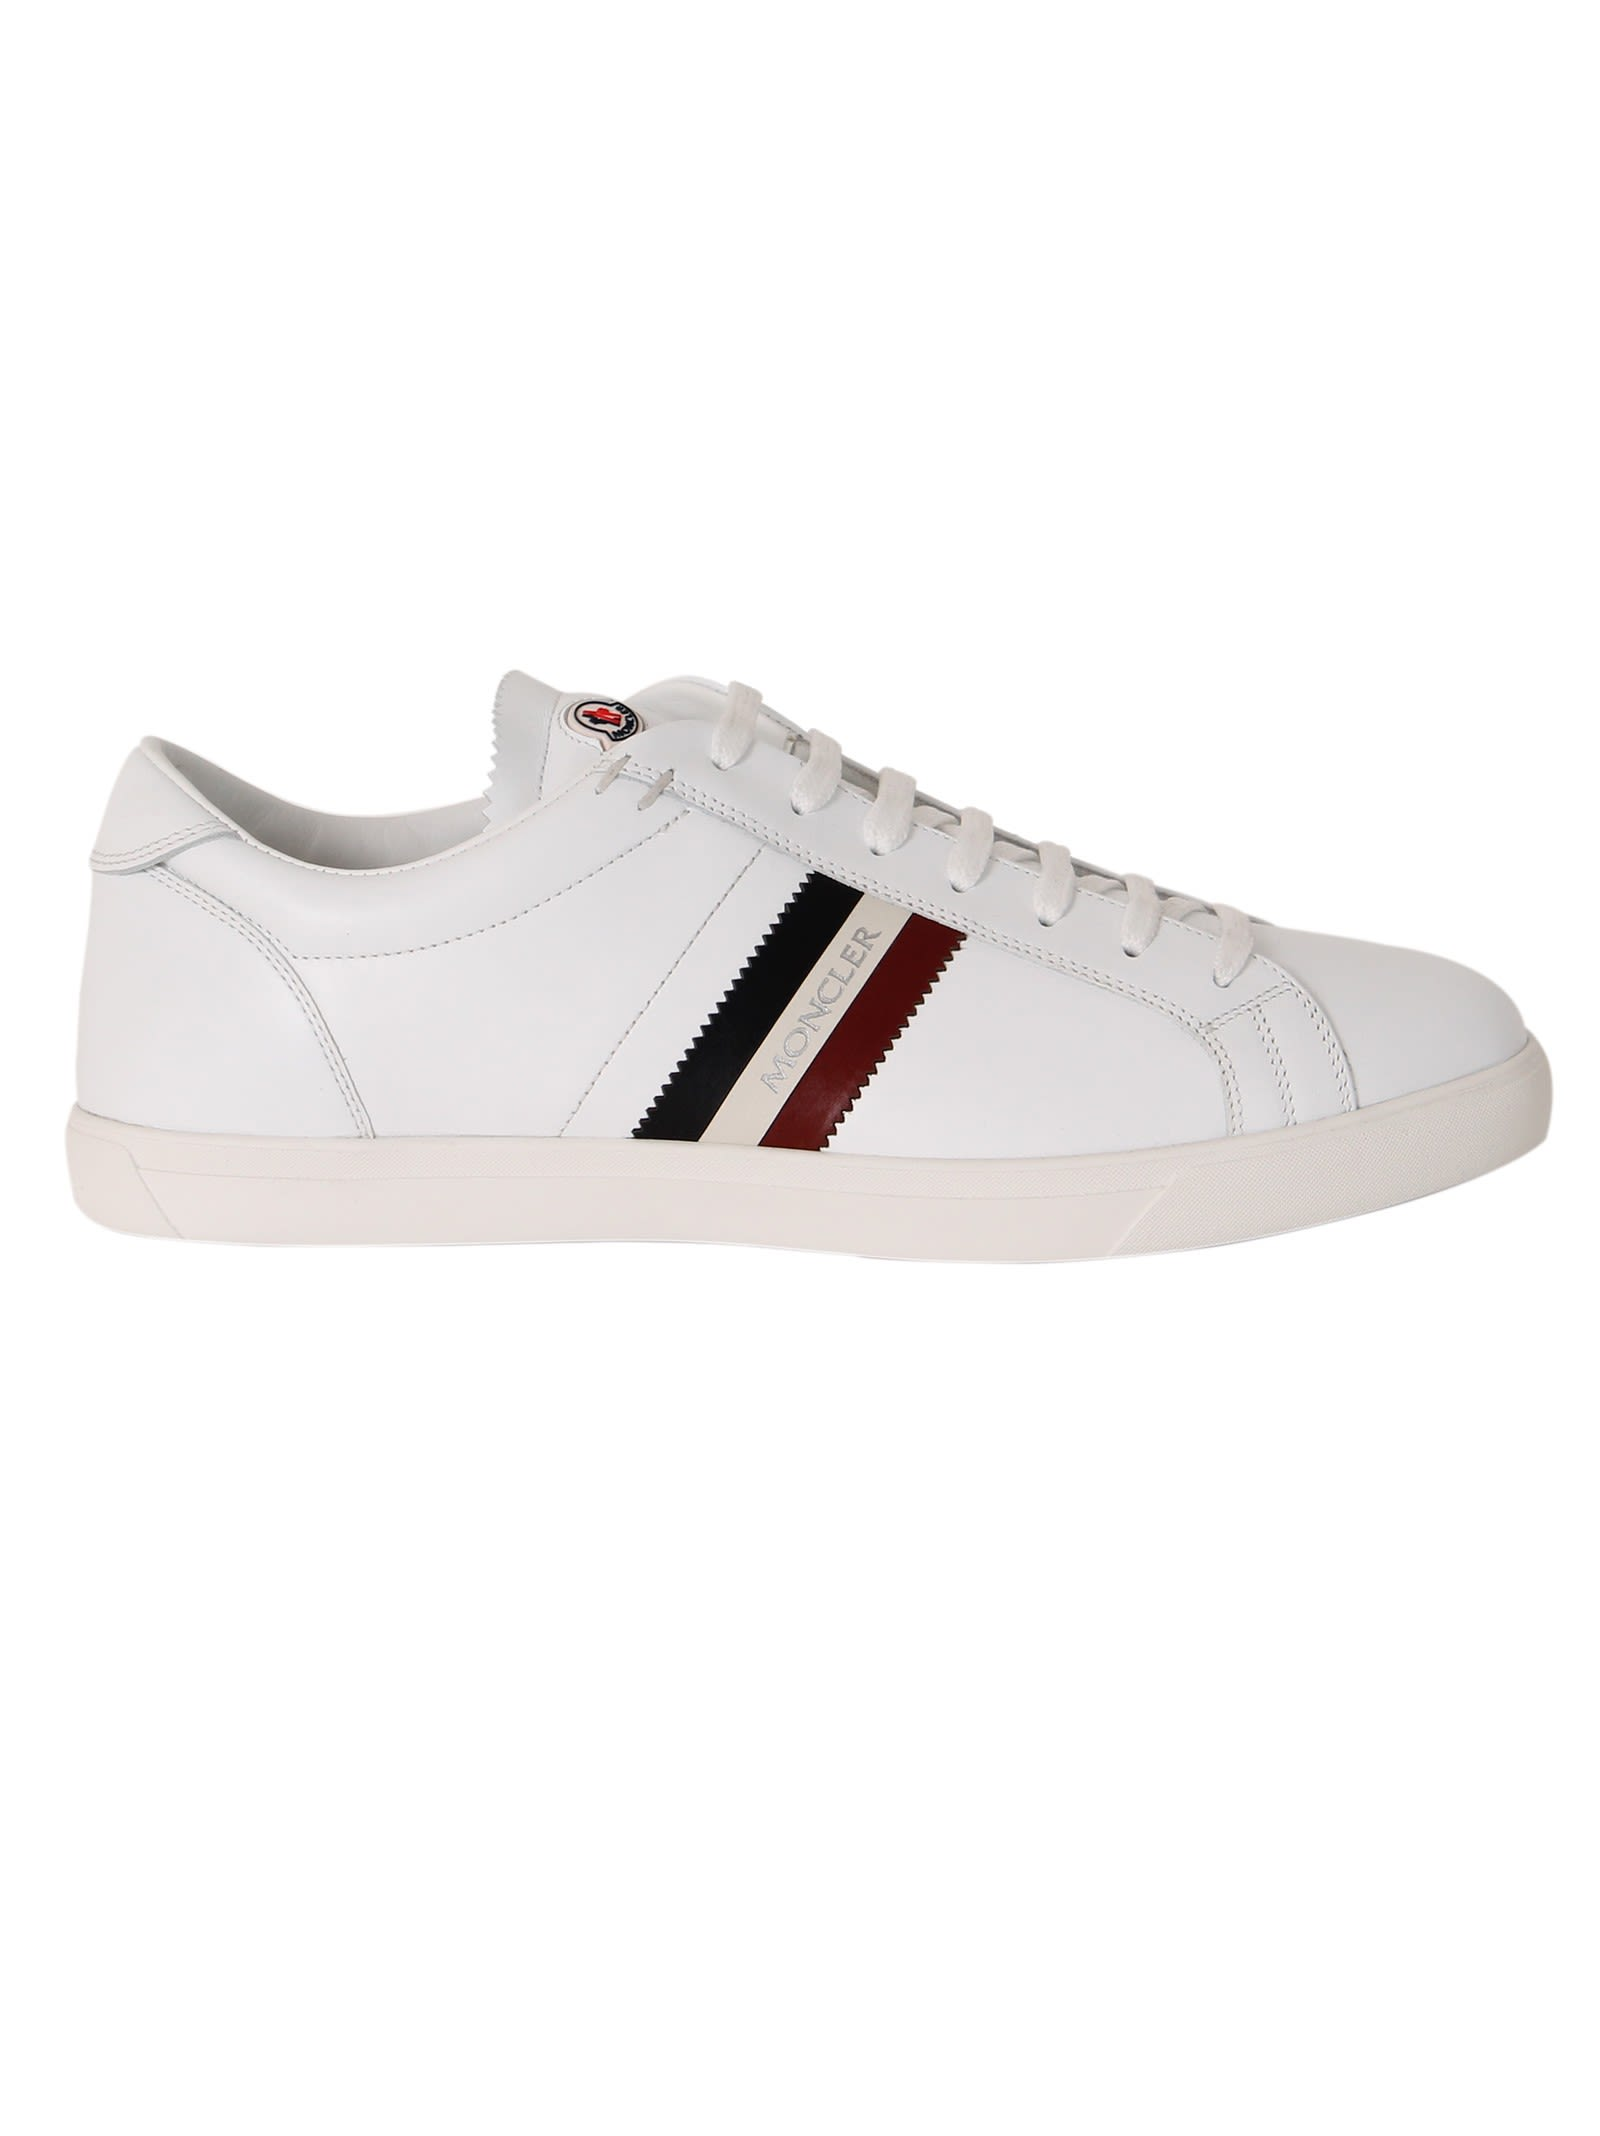 White La Monaco Low Sneakers